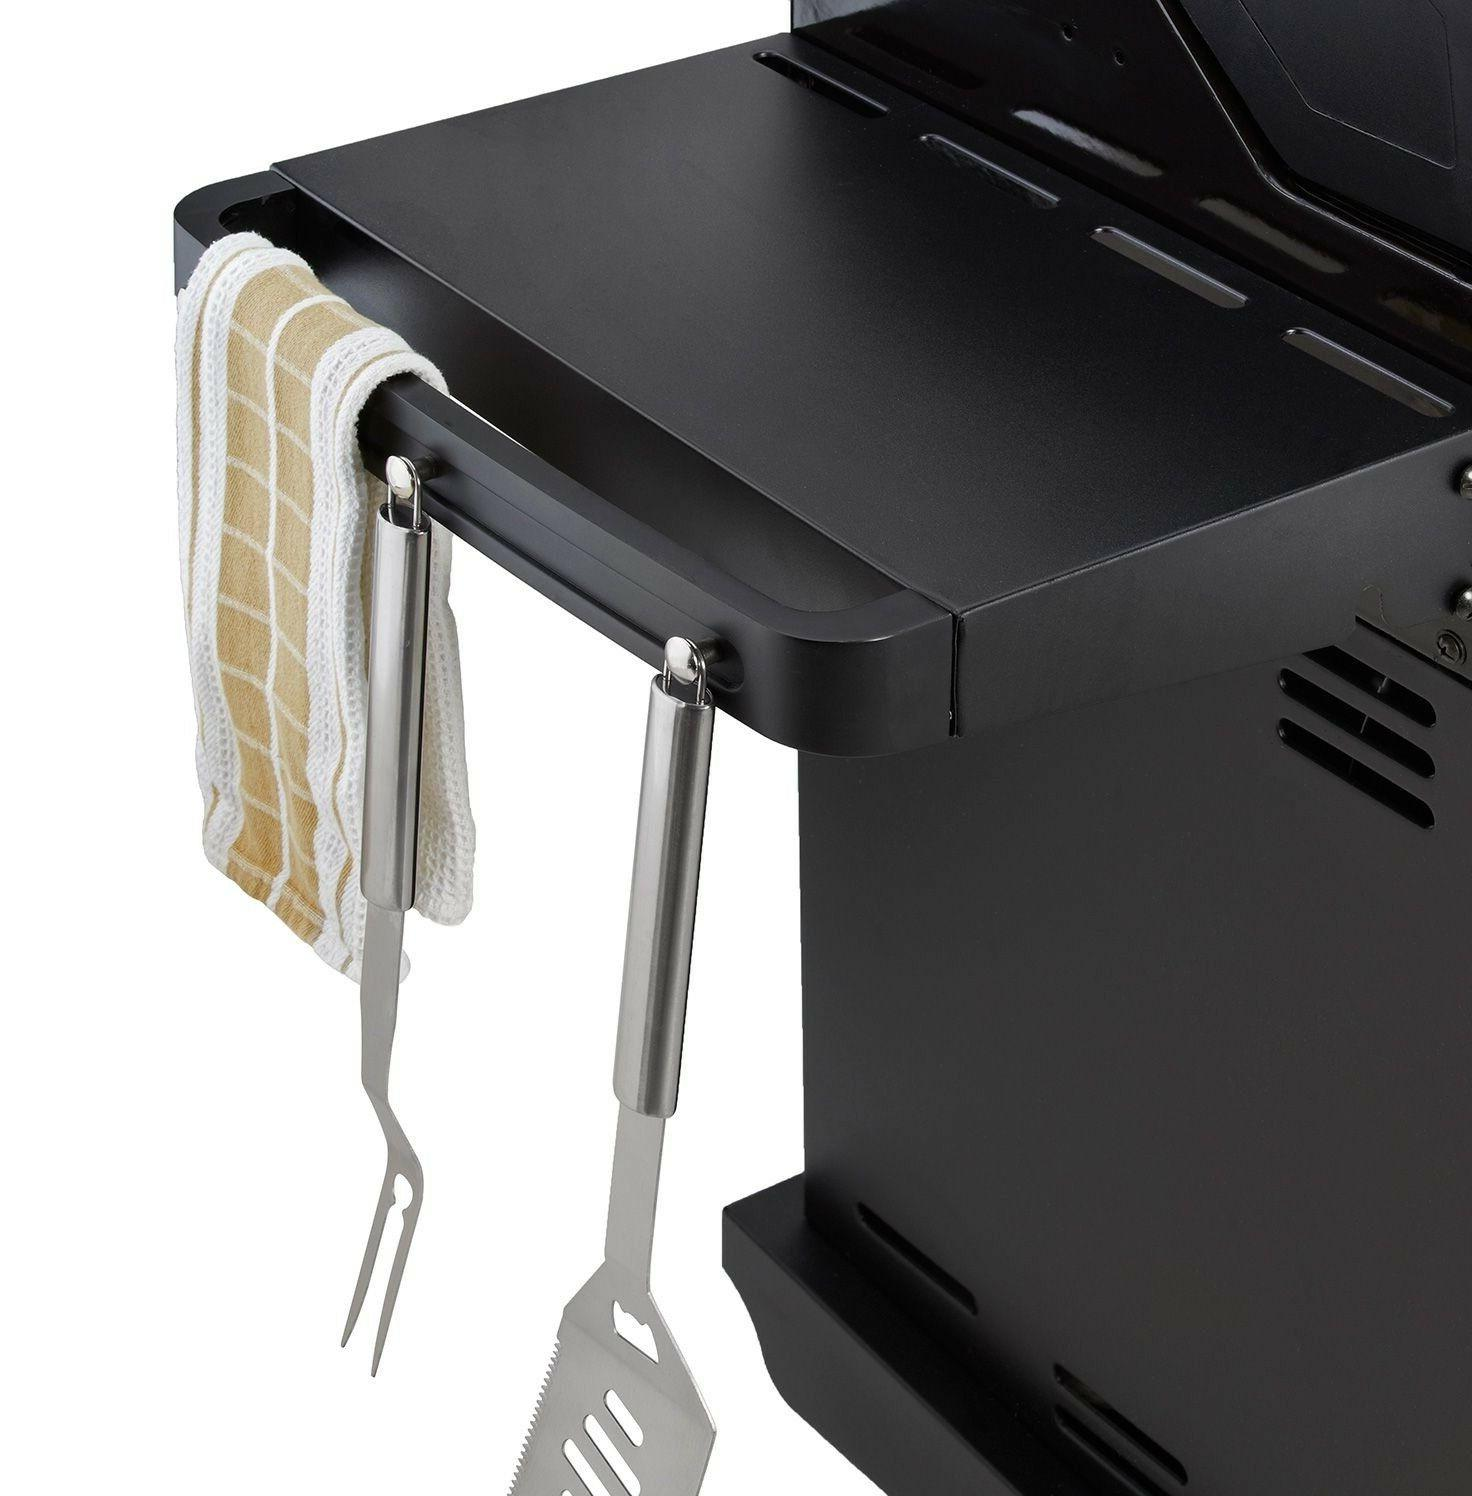 Dyna-Glo Space Living 36,000 Gas Grill